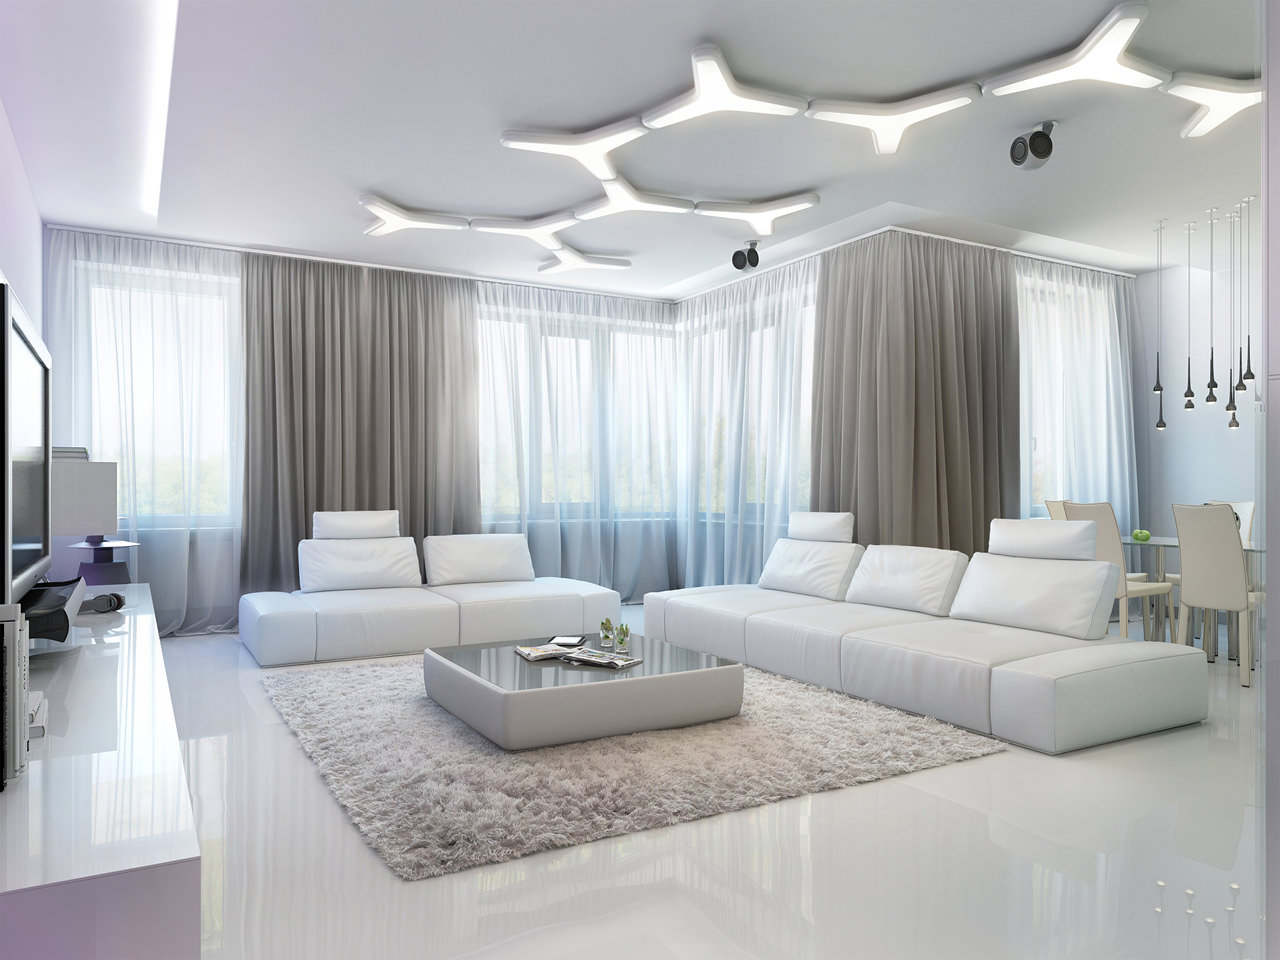 https://cdn.architecturendesign.net/wp-content/uploads/2014/07/1-White-living-room.jpg